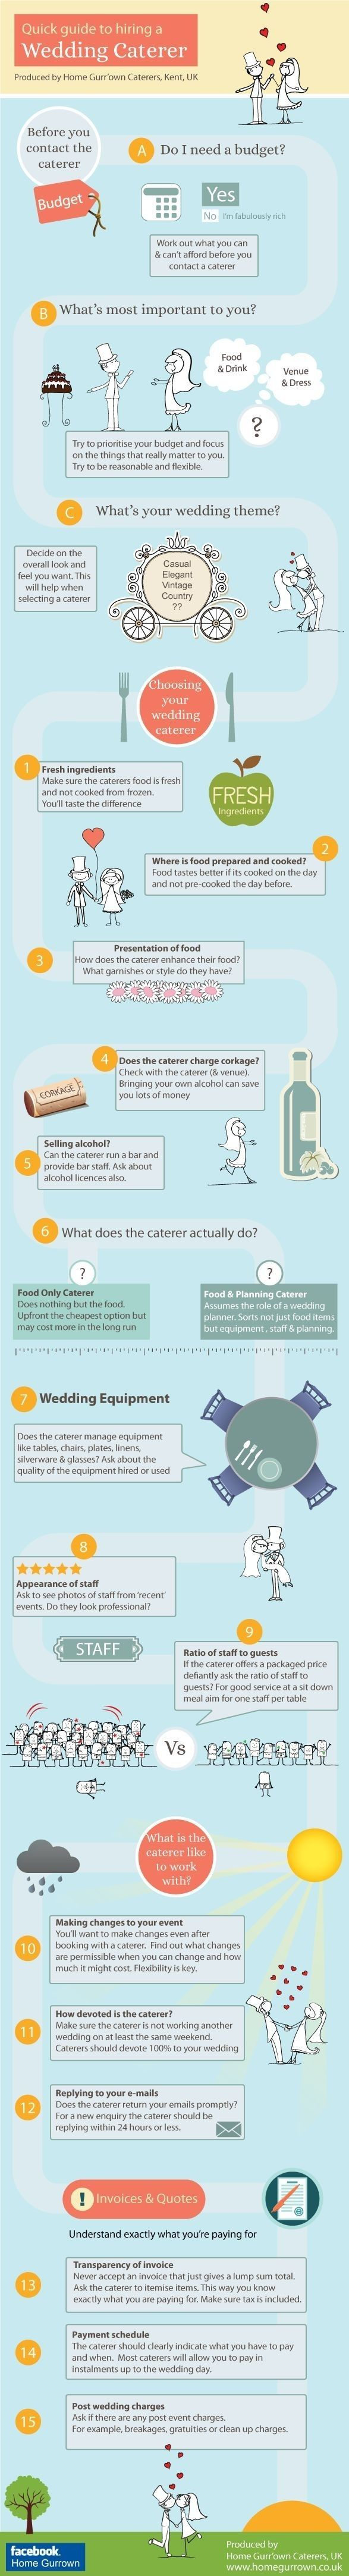 The most comprehensive 12 month wedding catering planning checklist